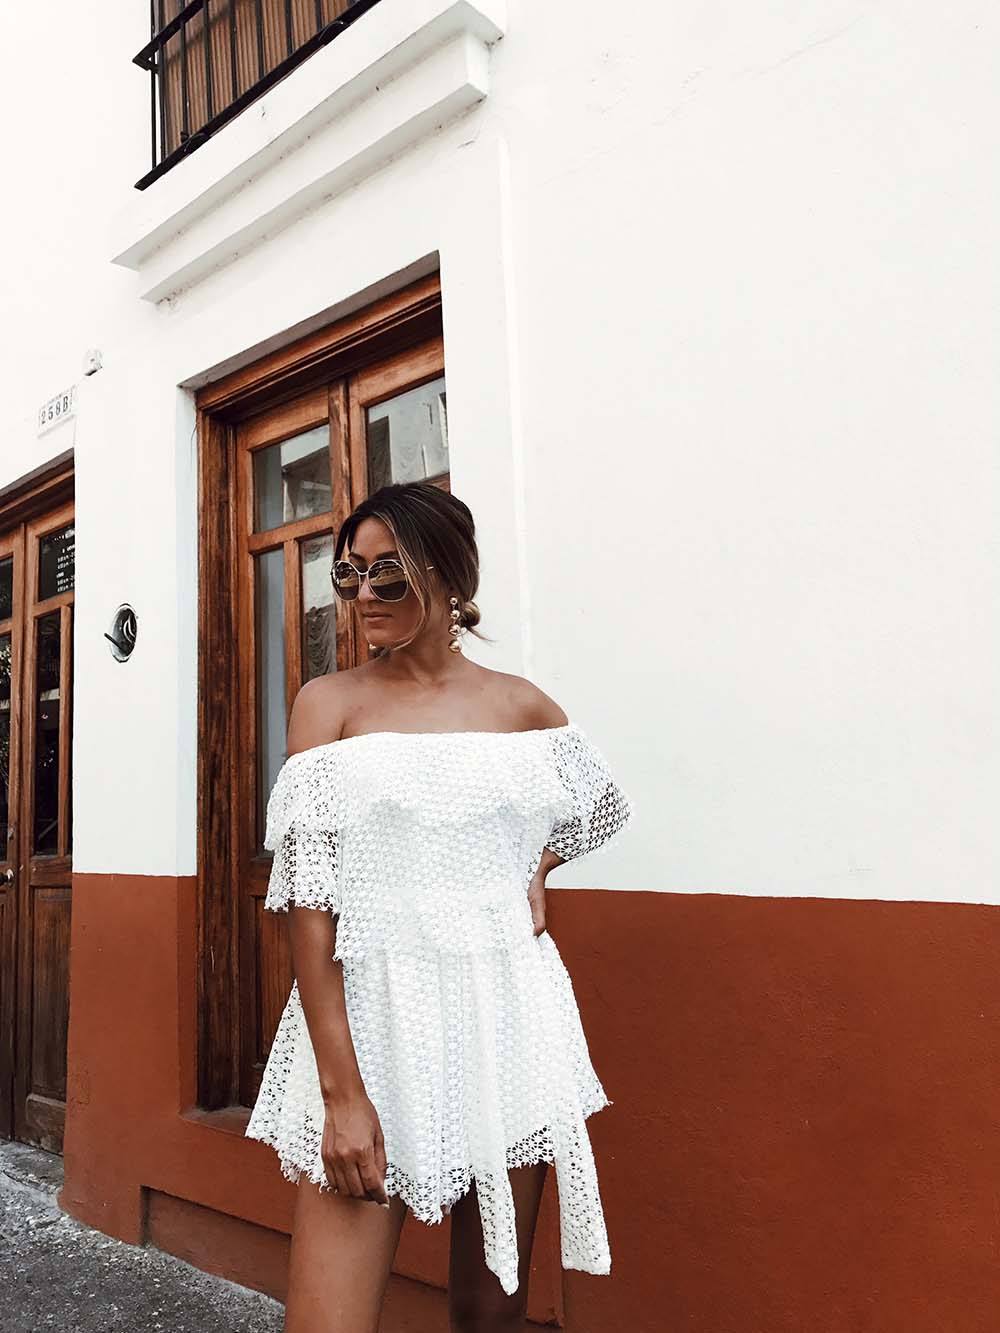 Let's Talk Babies, pregnant, pregnancy, babies, baby, baby fever, personal, sabotage skirt, white lace playsuit, white lace romper, ootd, melrodstyle, la blogger, ootd, street style,